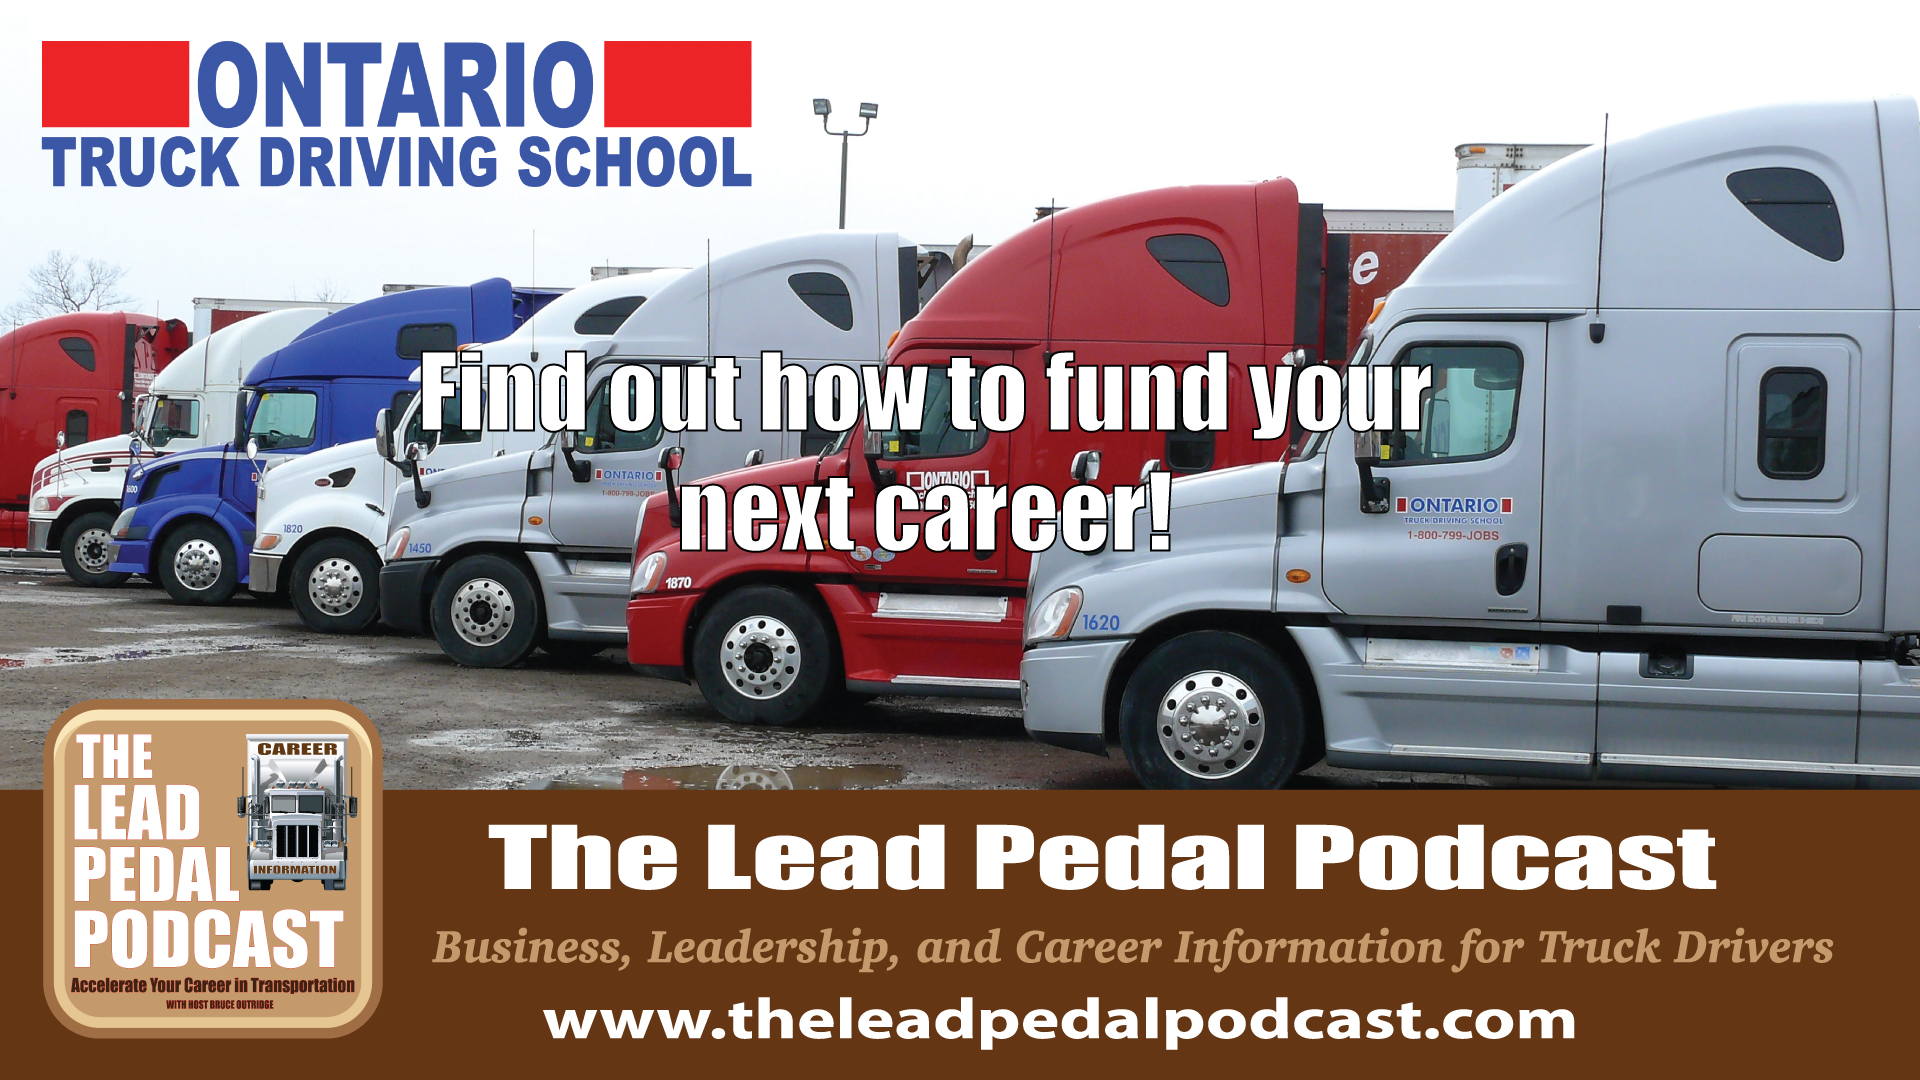 Funding with Ontario Truck Driving School